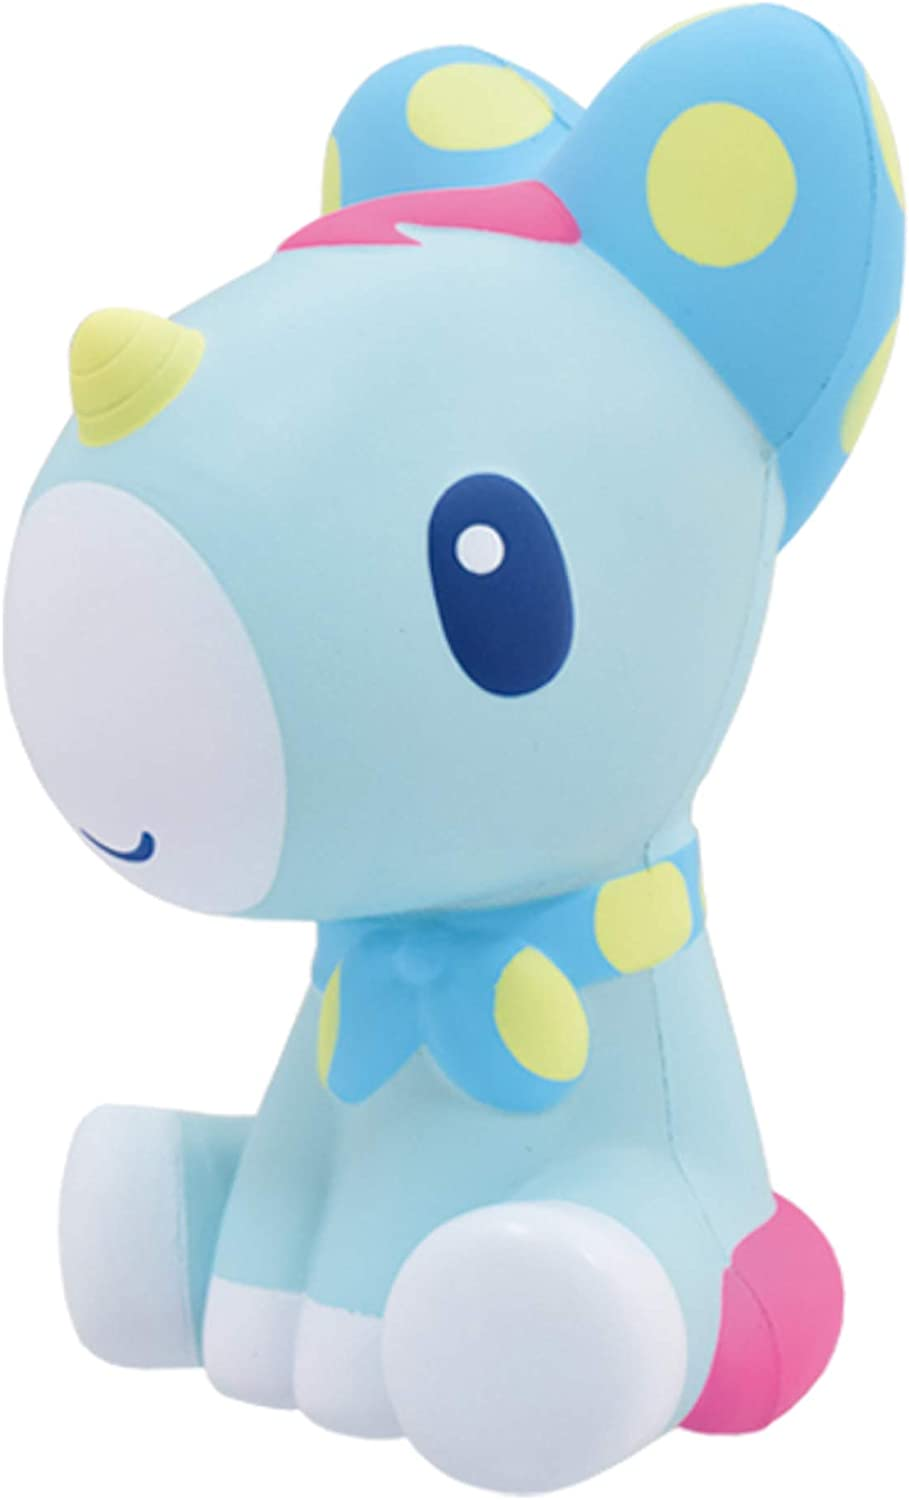 ibloom Unicorn Cute Animal Slow Rising Big Squishy Toy (Aqua, Light Blue, Apple Scented, 6 Inch) [Kawaii Squishies for Party Favors, Stress Balls, Birthday Gift Boxes for Girls, Boys, Kids, Adults]